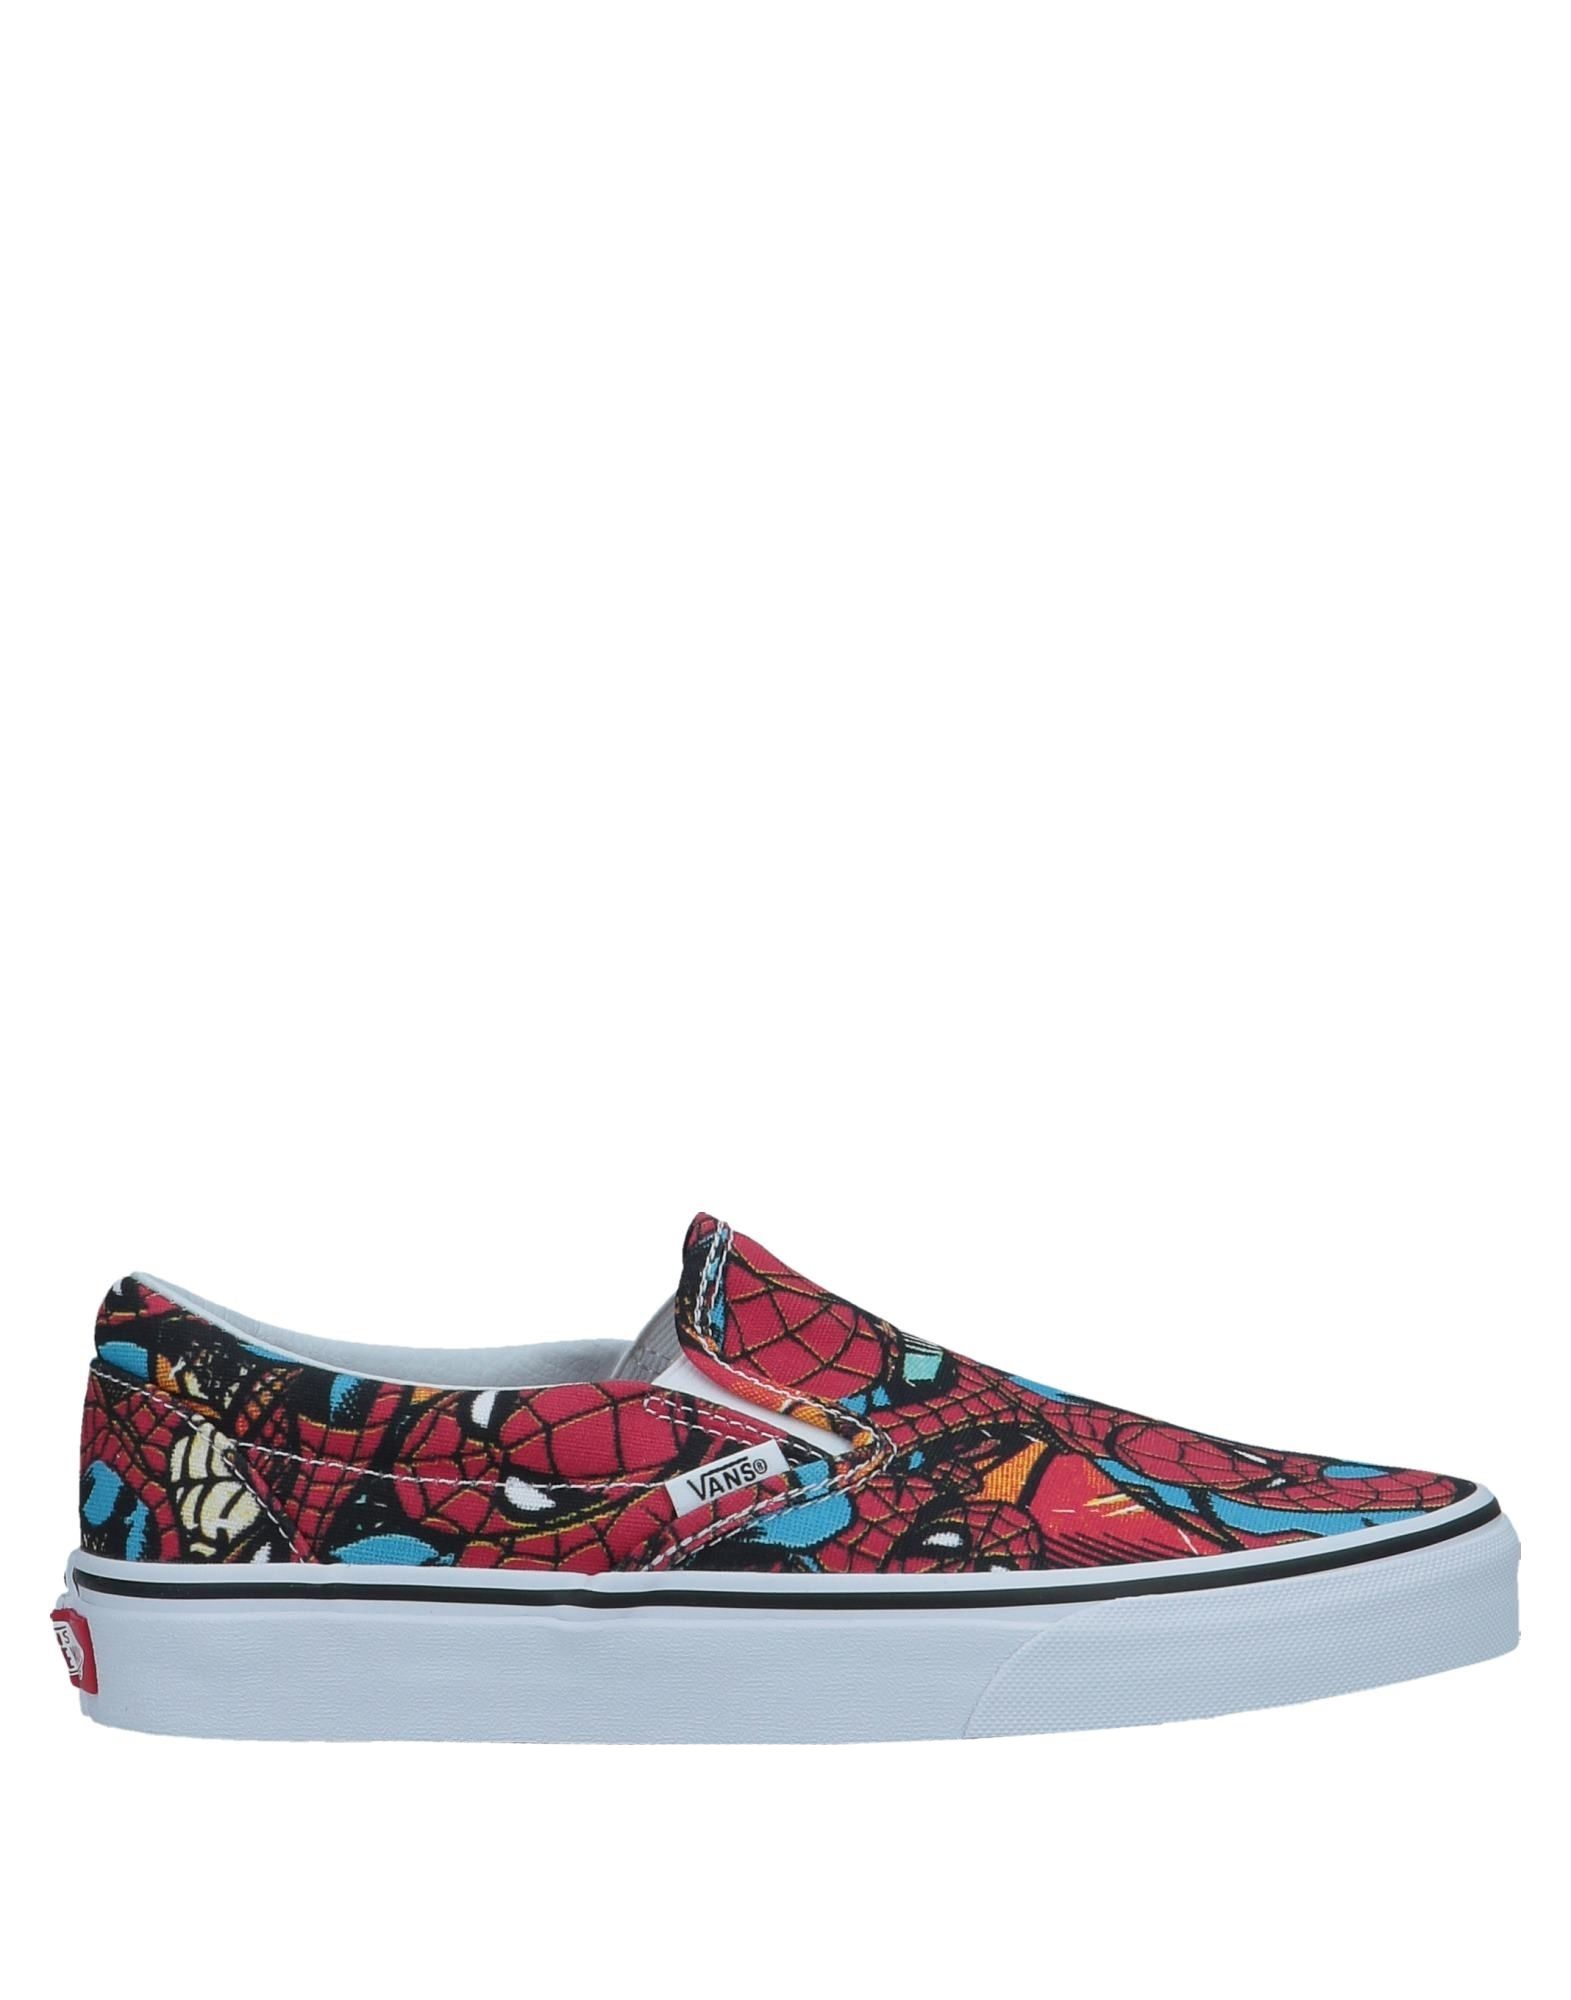 Vans on Sneakers - Women Vans Sneakers online on Vans  Australia - 11574025PA 03bfab